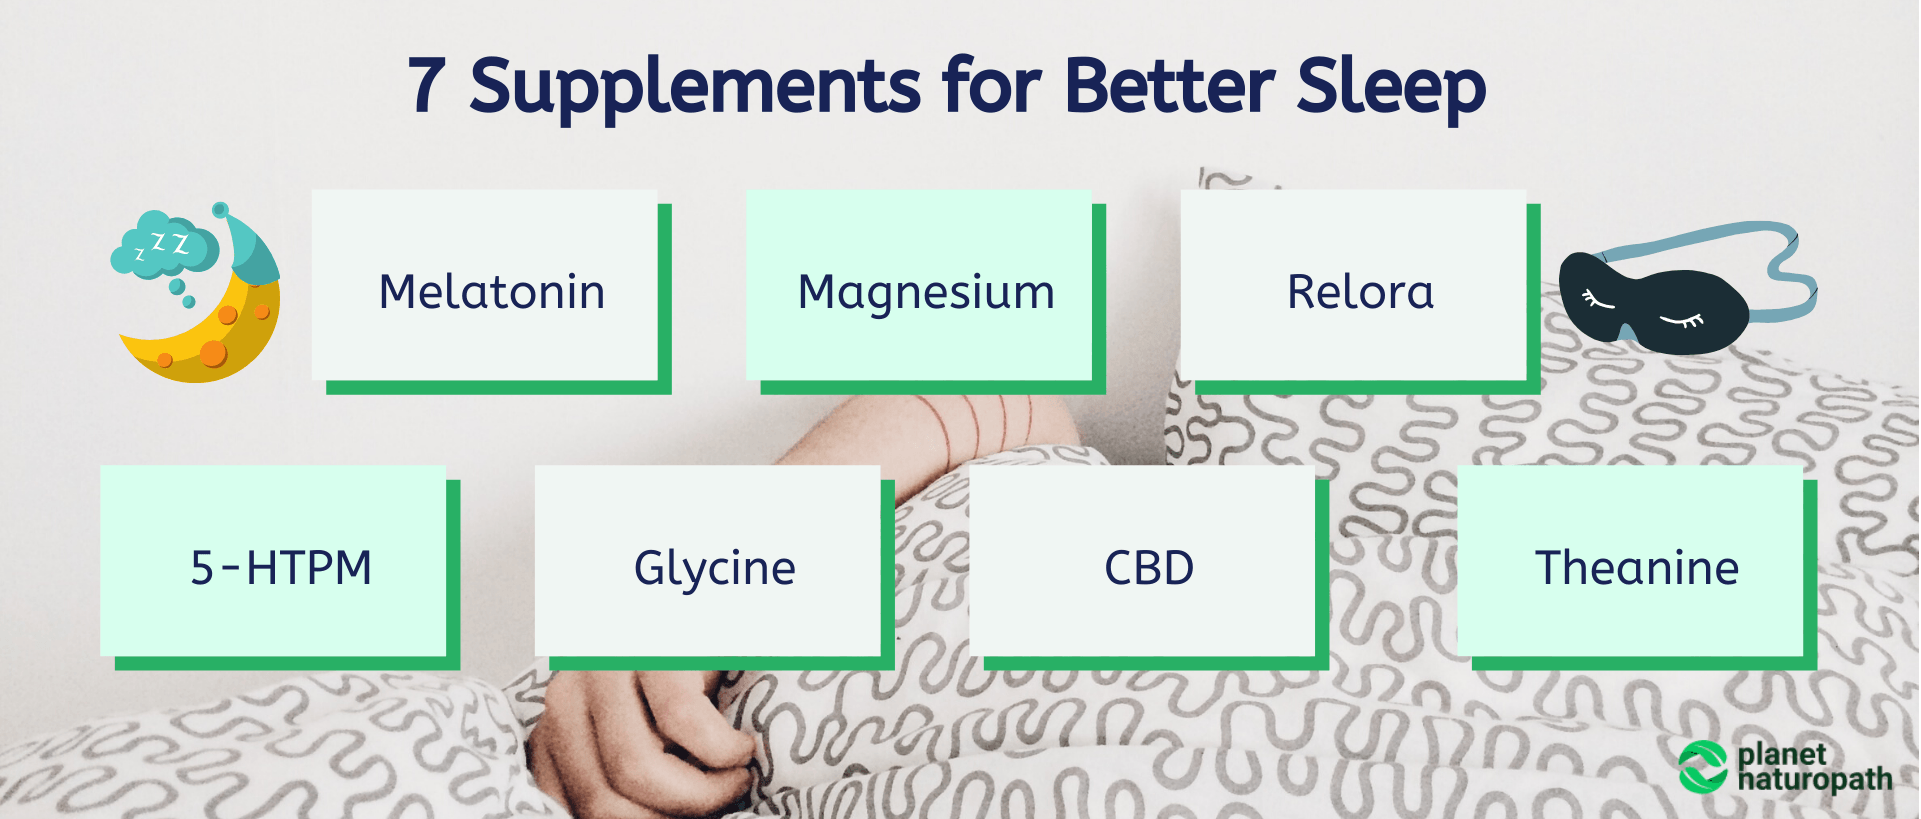 7-Supplements-for-Better-Sleep